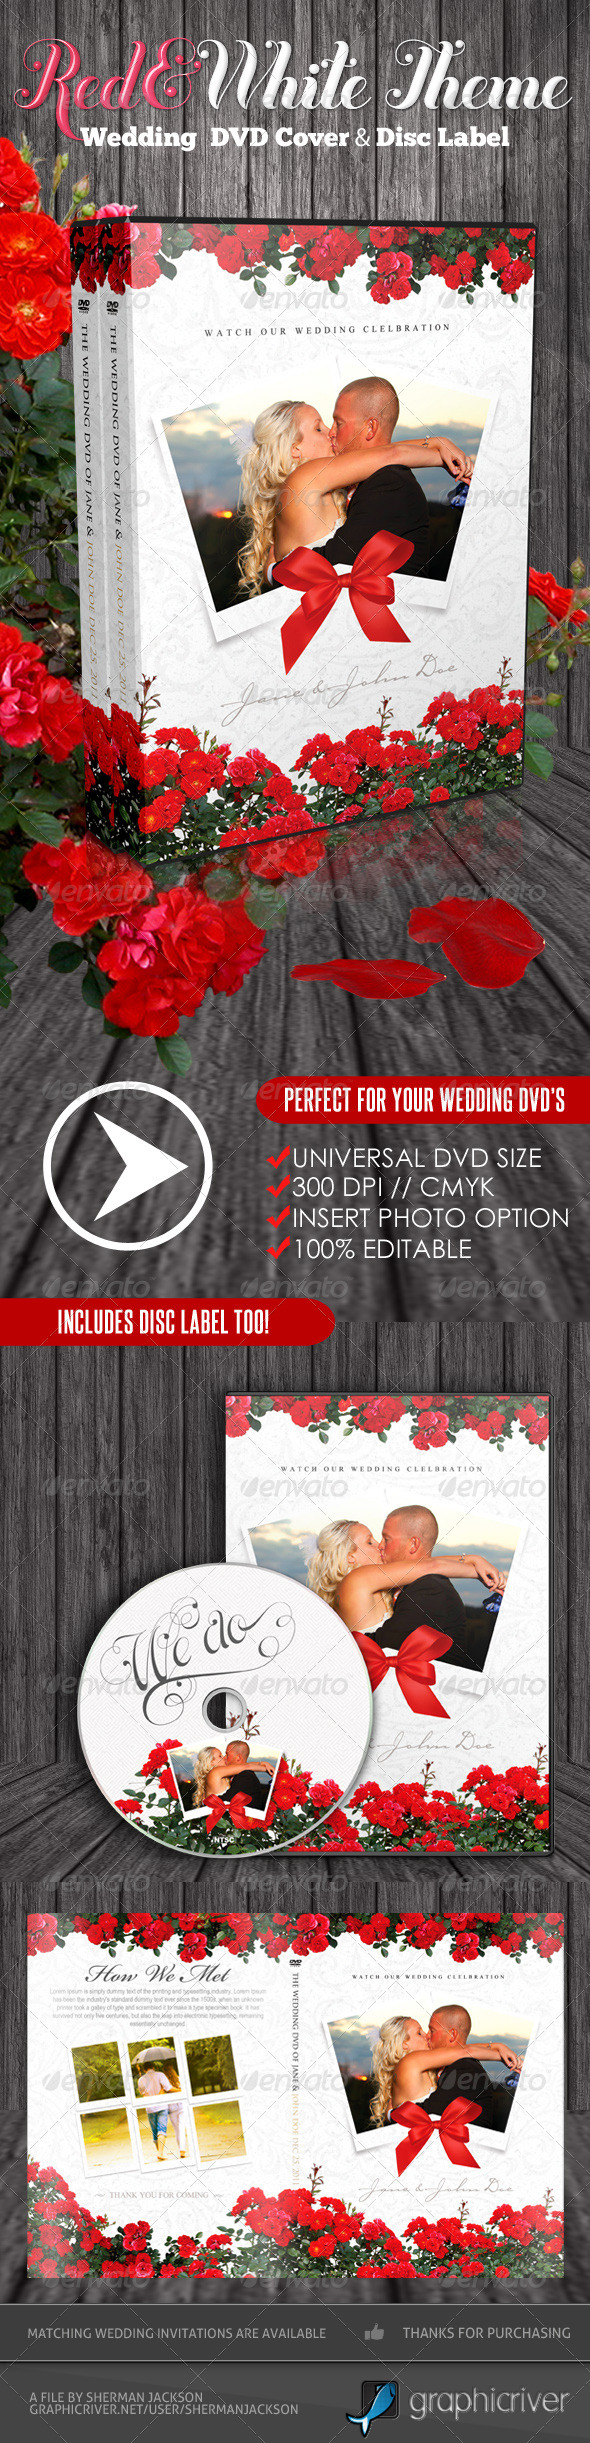 Red & White Theme Wedding DVD & Disc Label - CD & DVD artwork Print Templates